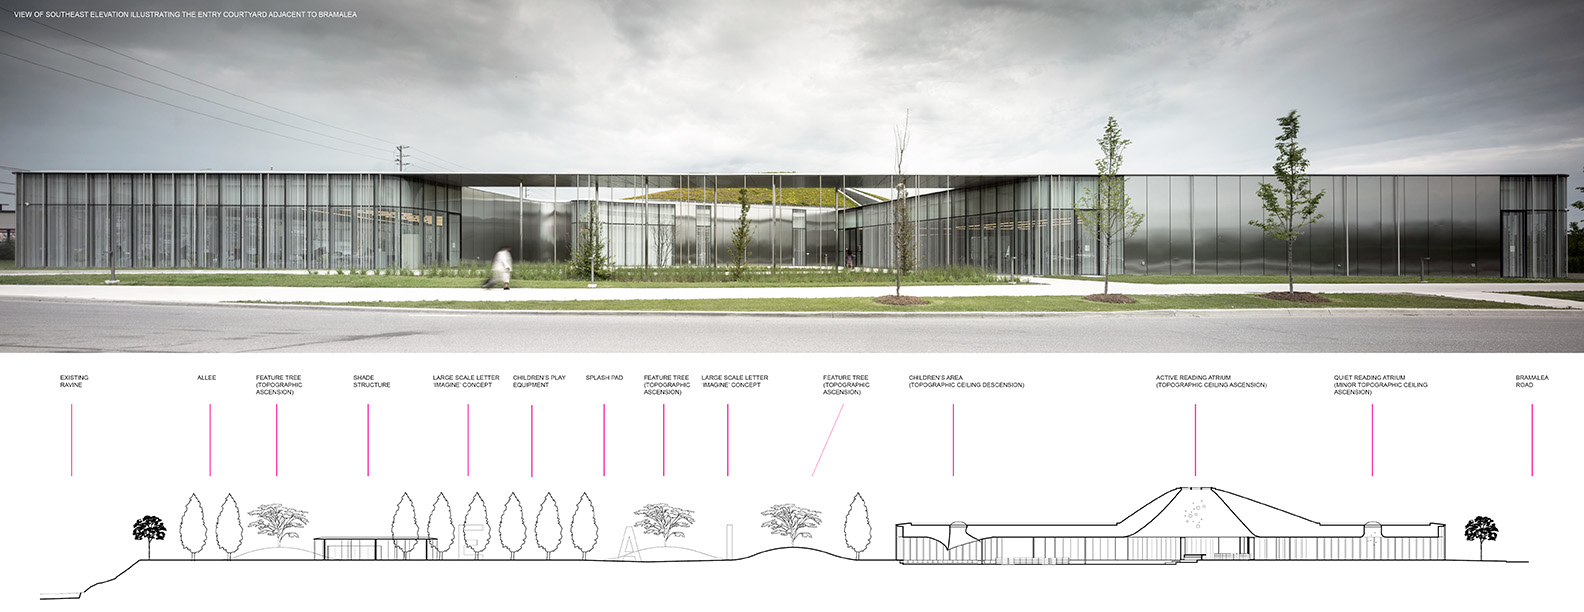 VIEW OF SOUTHEAST ELEVATION ILLUSTRATING THE ENTRY COURTYARD ADJACENT TO BRAMALEA Nic Lehoux